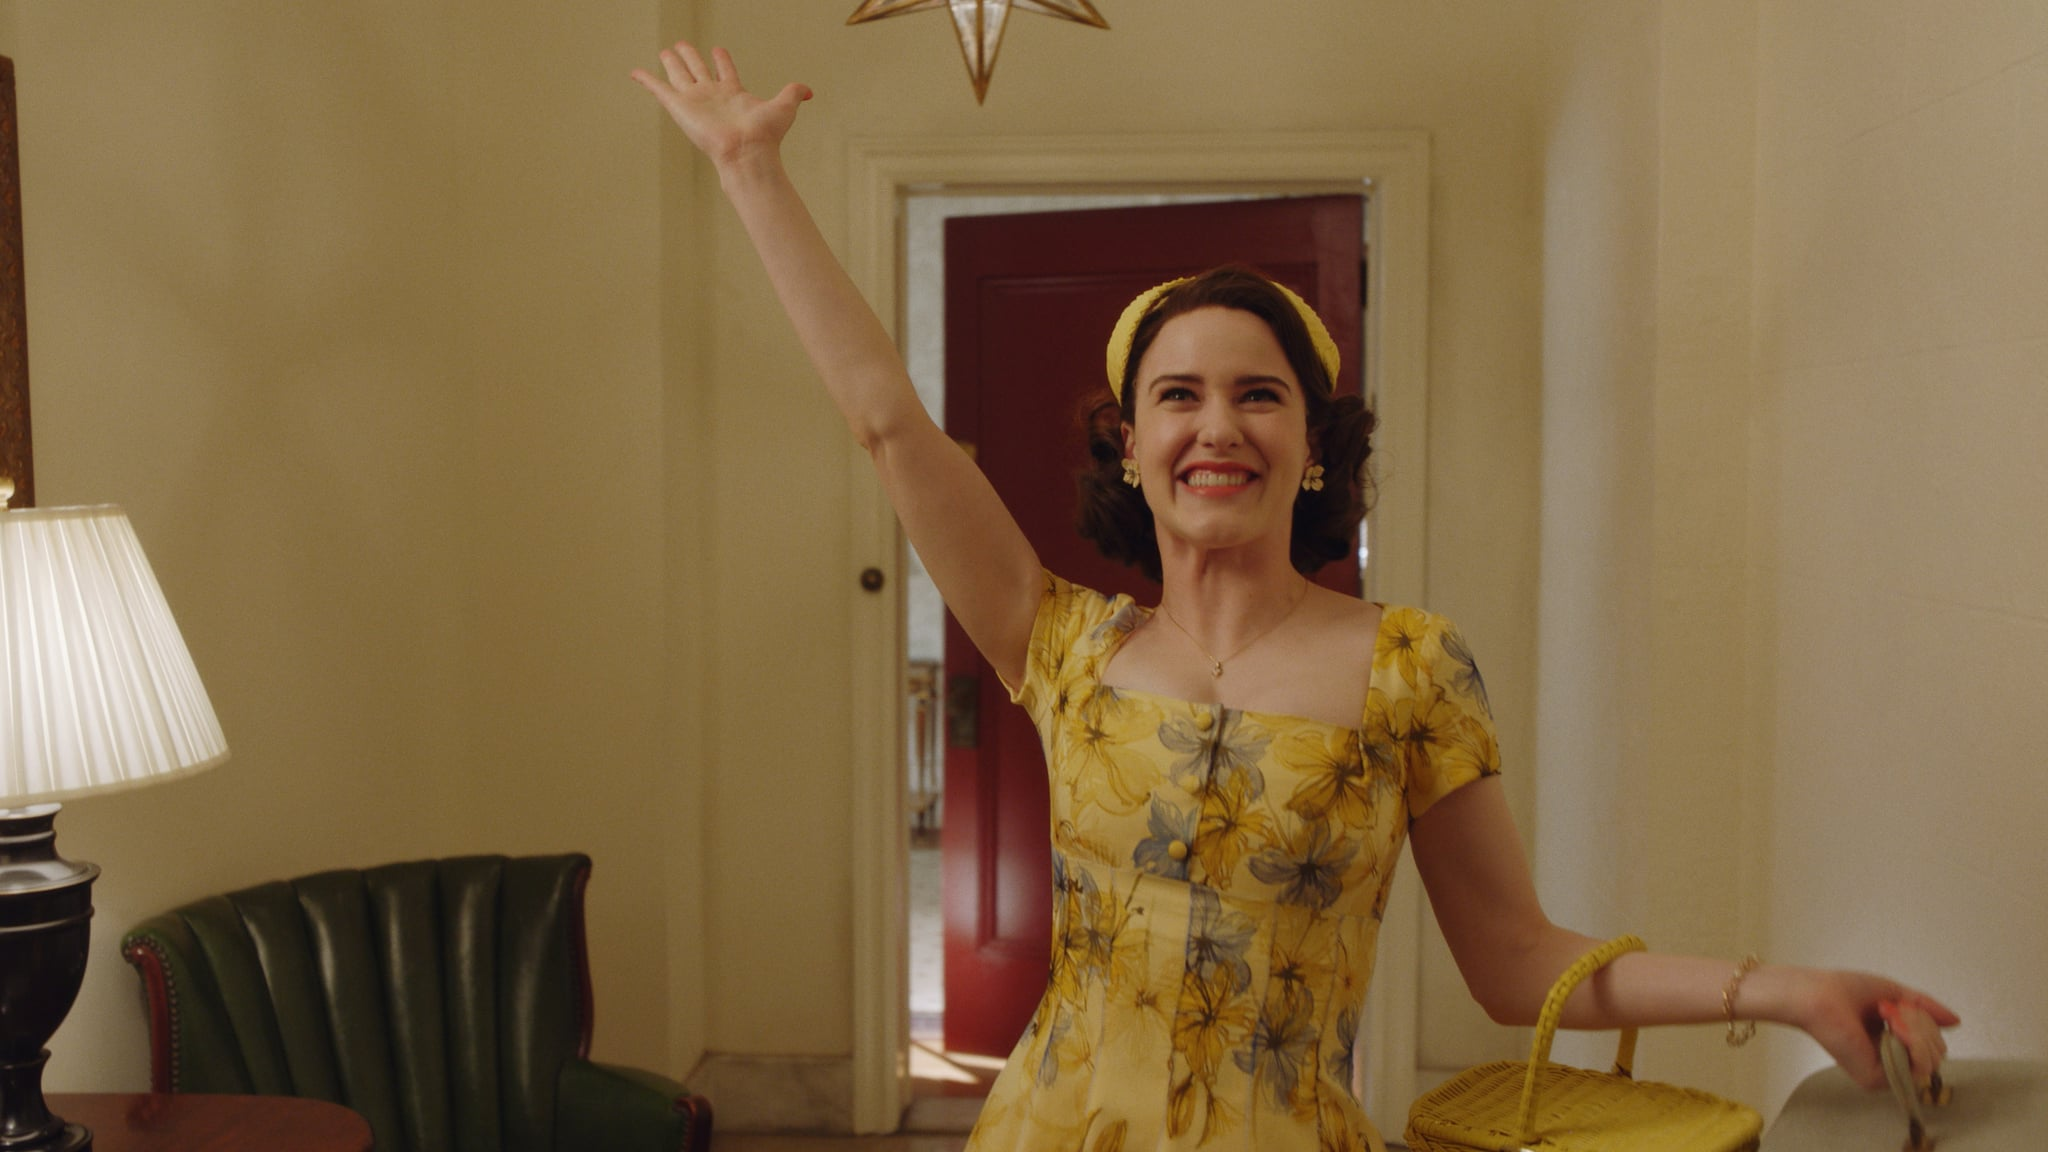 THE MARVELOUS MRS. MAISEL, Rachel Brosnahan, 'We're Going To The Catskills!', (Season 2, ep. 204, aired Dec. 5, 2018). photo: Amazon / Courtesy: Everett Collection